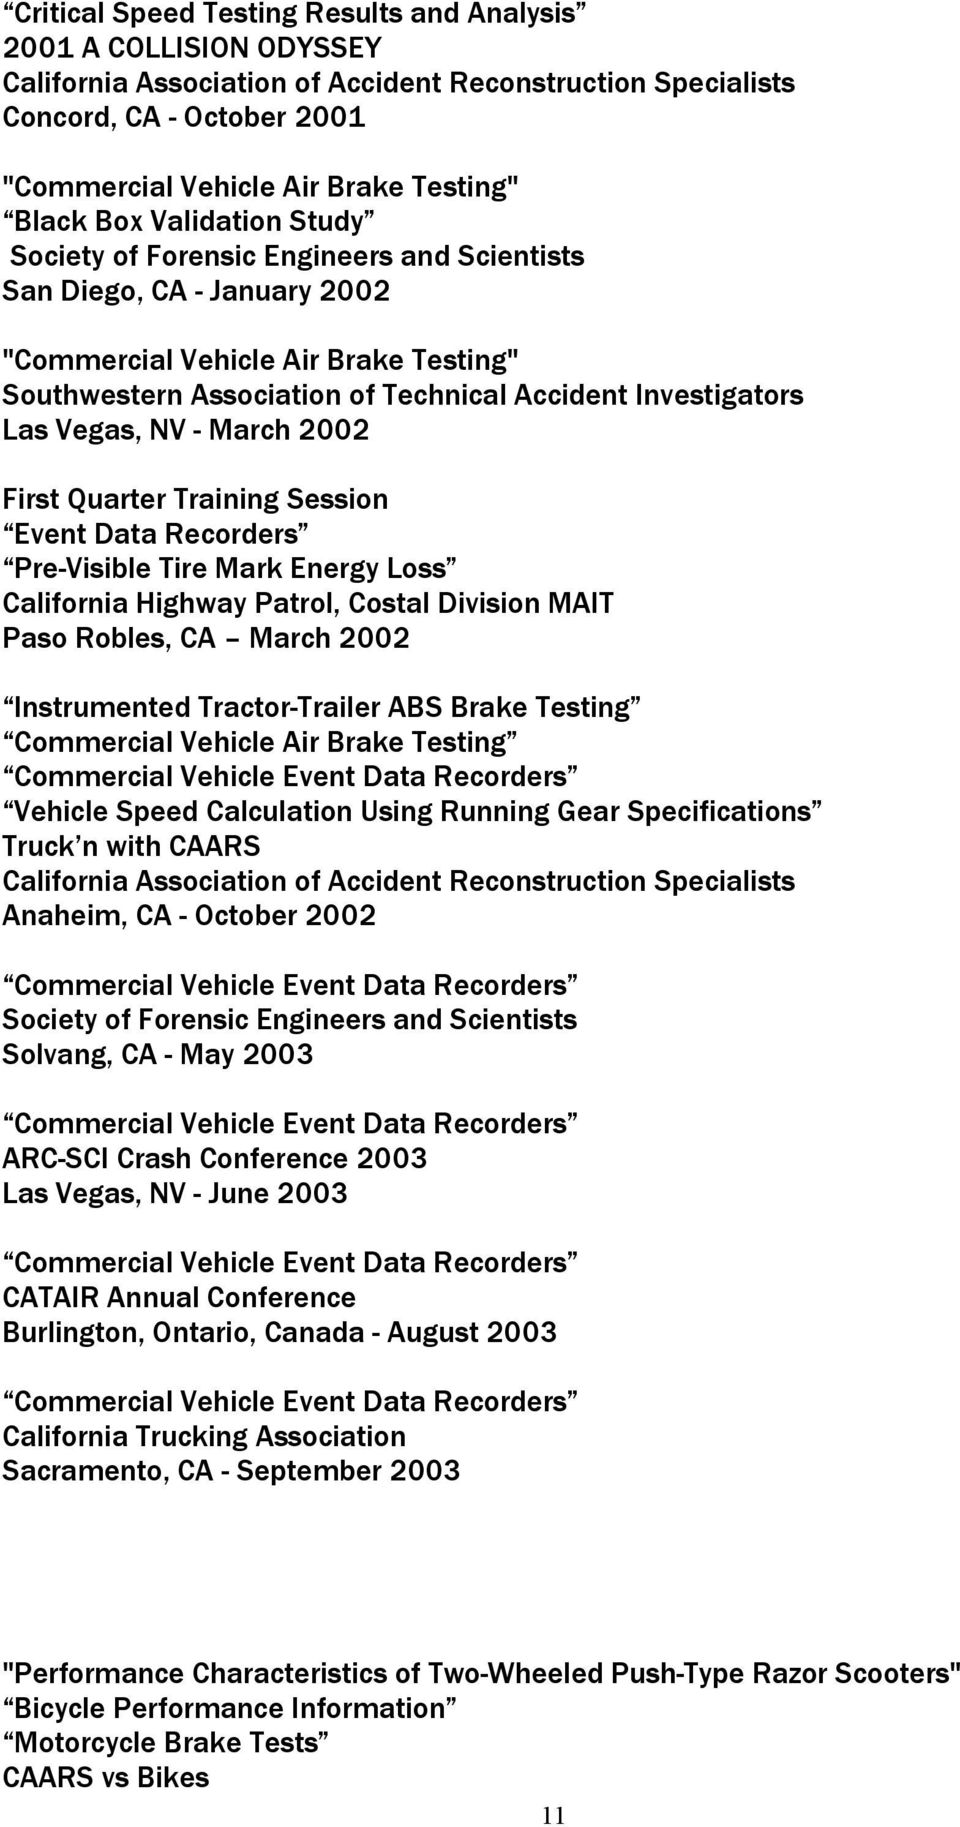 Energy Loss California Highway Patrol, Costal Division MAIT Paso Robles, CA March 2002 Instrumented Tractor-Trailer ABS Brake Testing Commercial Vehicle Air Brake Testing Vehicle Speed Calculation